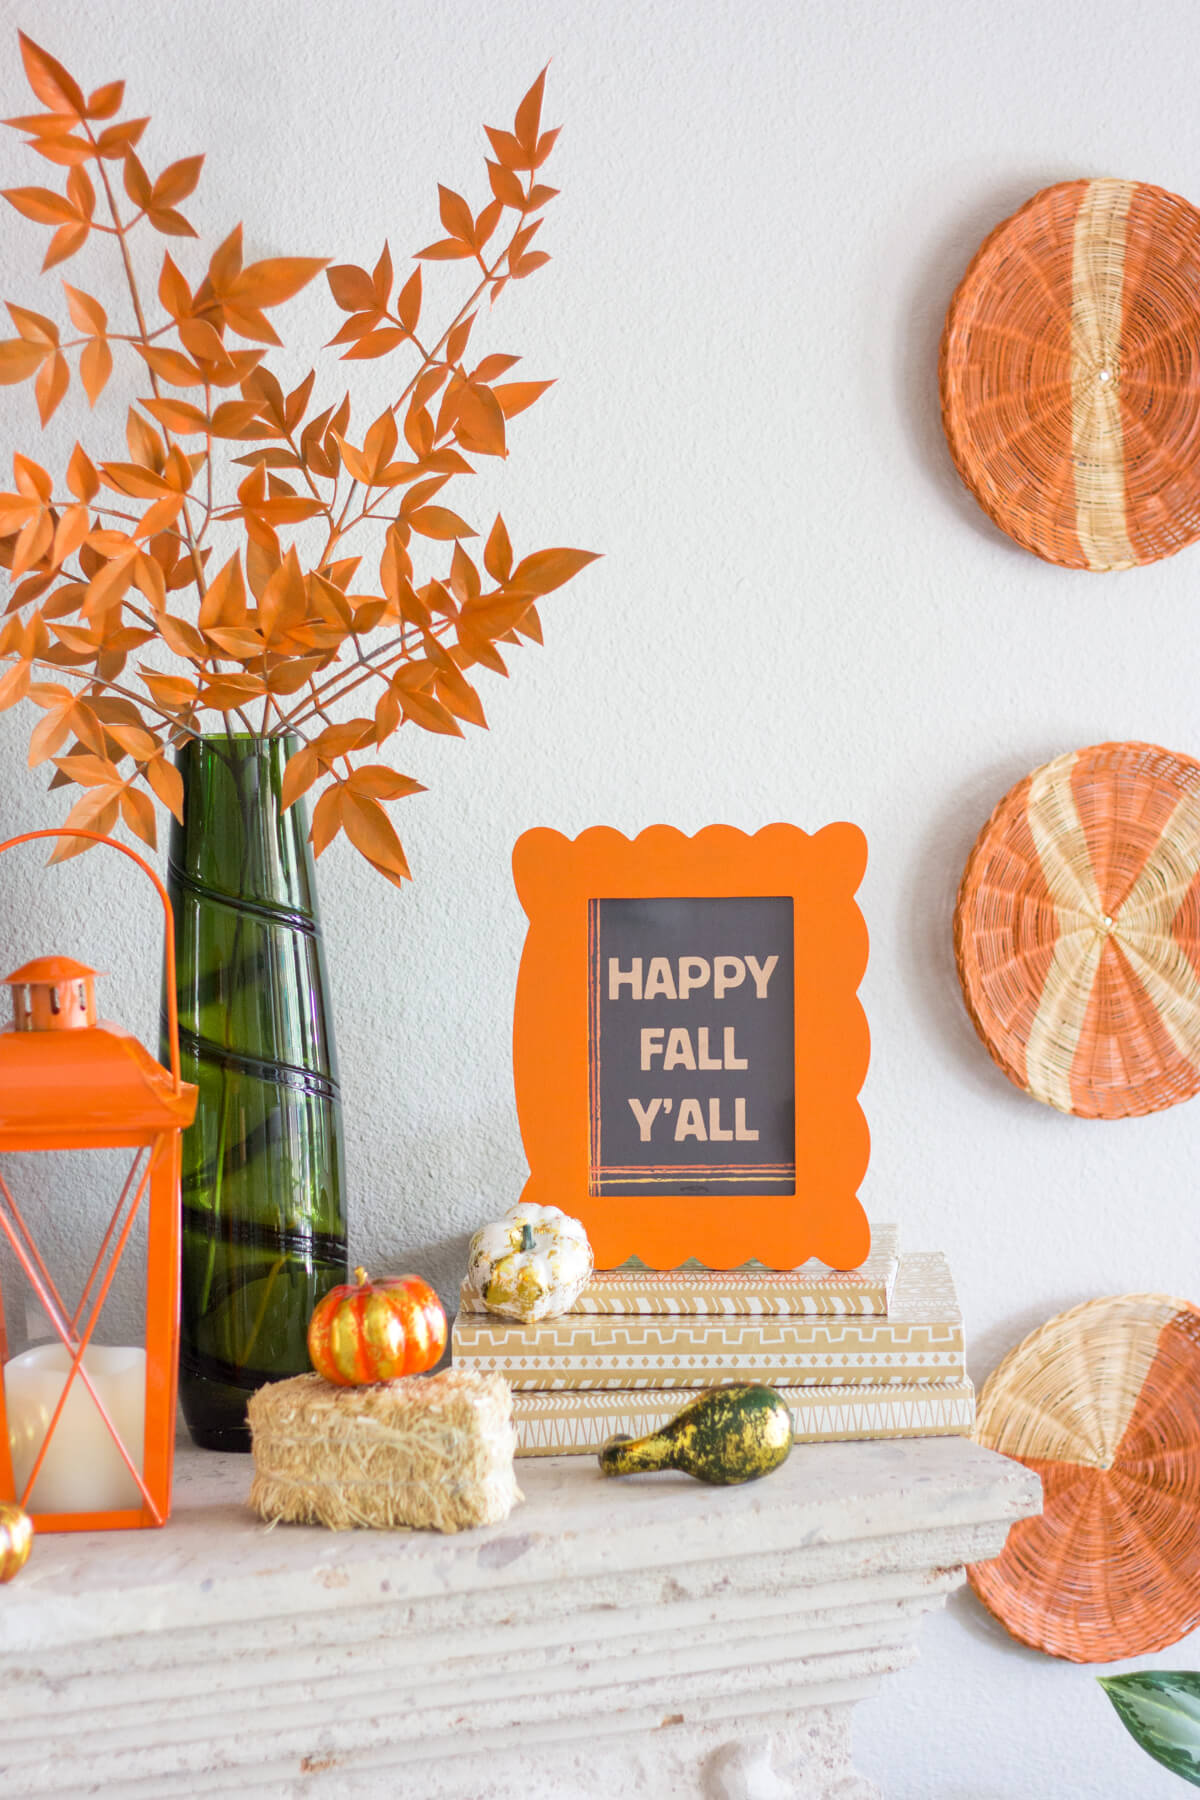 Accent on Orange for a Cheerful Mood | Fall Mantel Decorating Ideas For Halloween